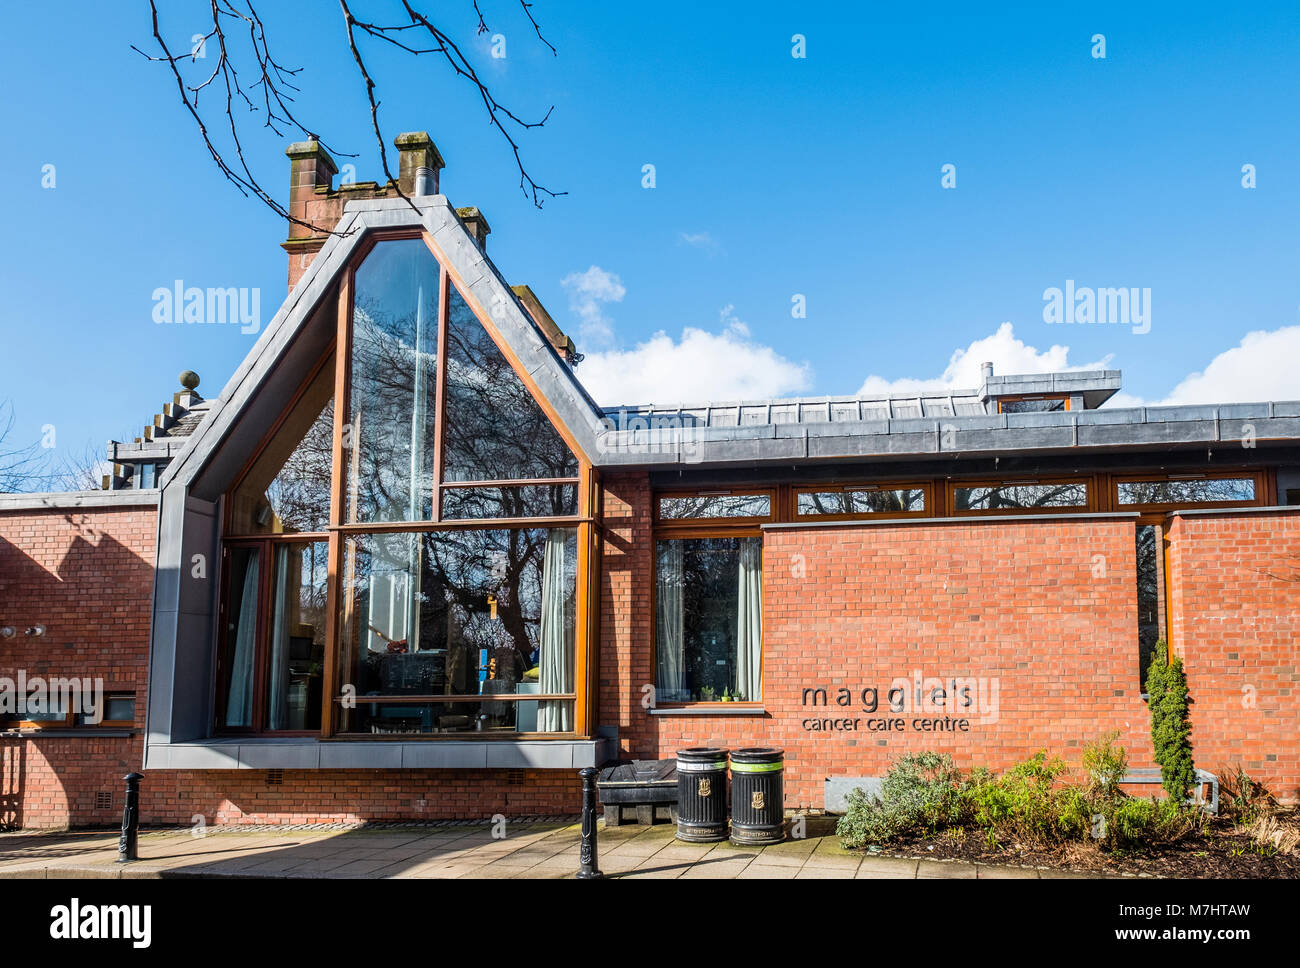 External view of Maggie's Cancer Care Centre at Glasgow university, Scotland, United Kingdom - Stock Image